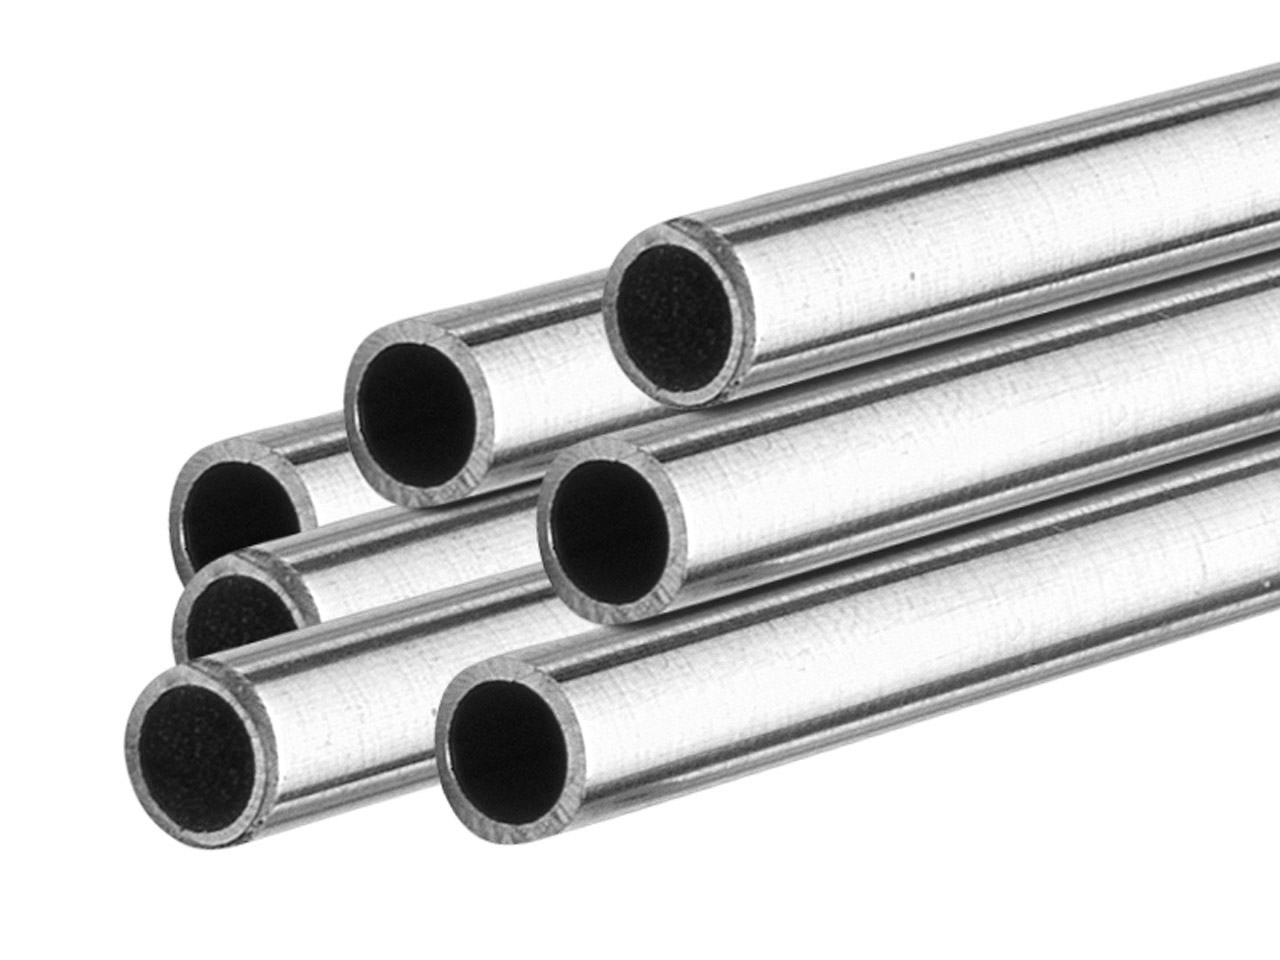 9ct Medium White Tube, Ref 1,      Outside Diameter 5.0mm,            Inside Diameter 3.8mm, 0.6mm Wall  Thickness